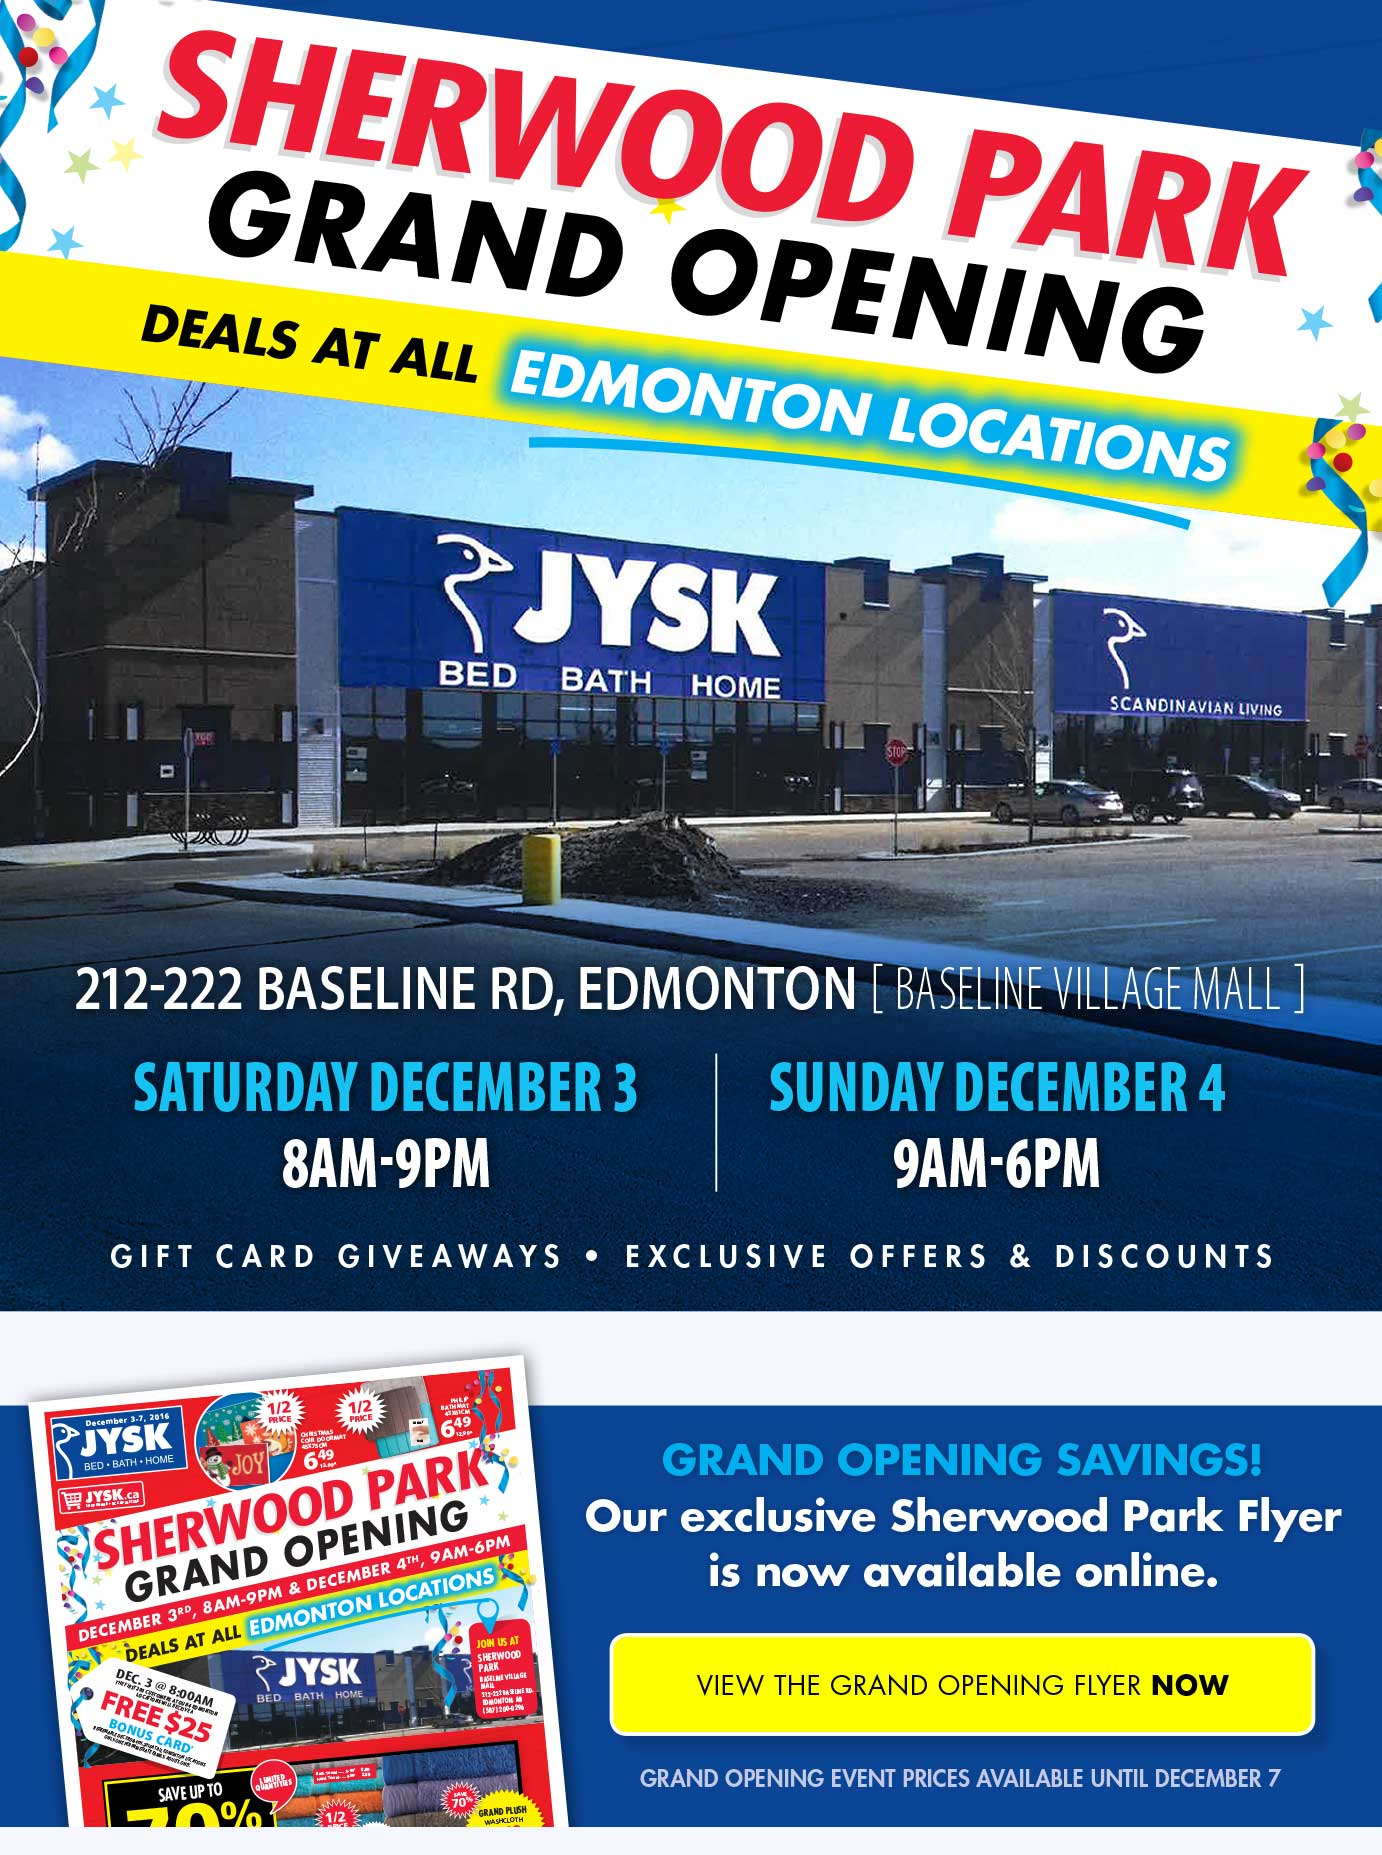 Sherwood Park Grand Opening Event!